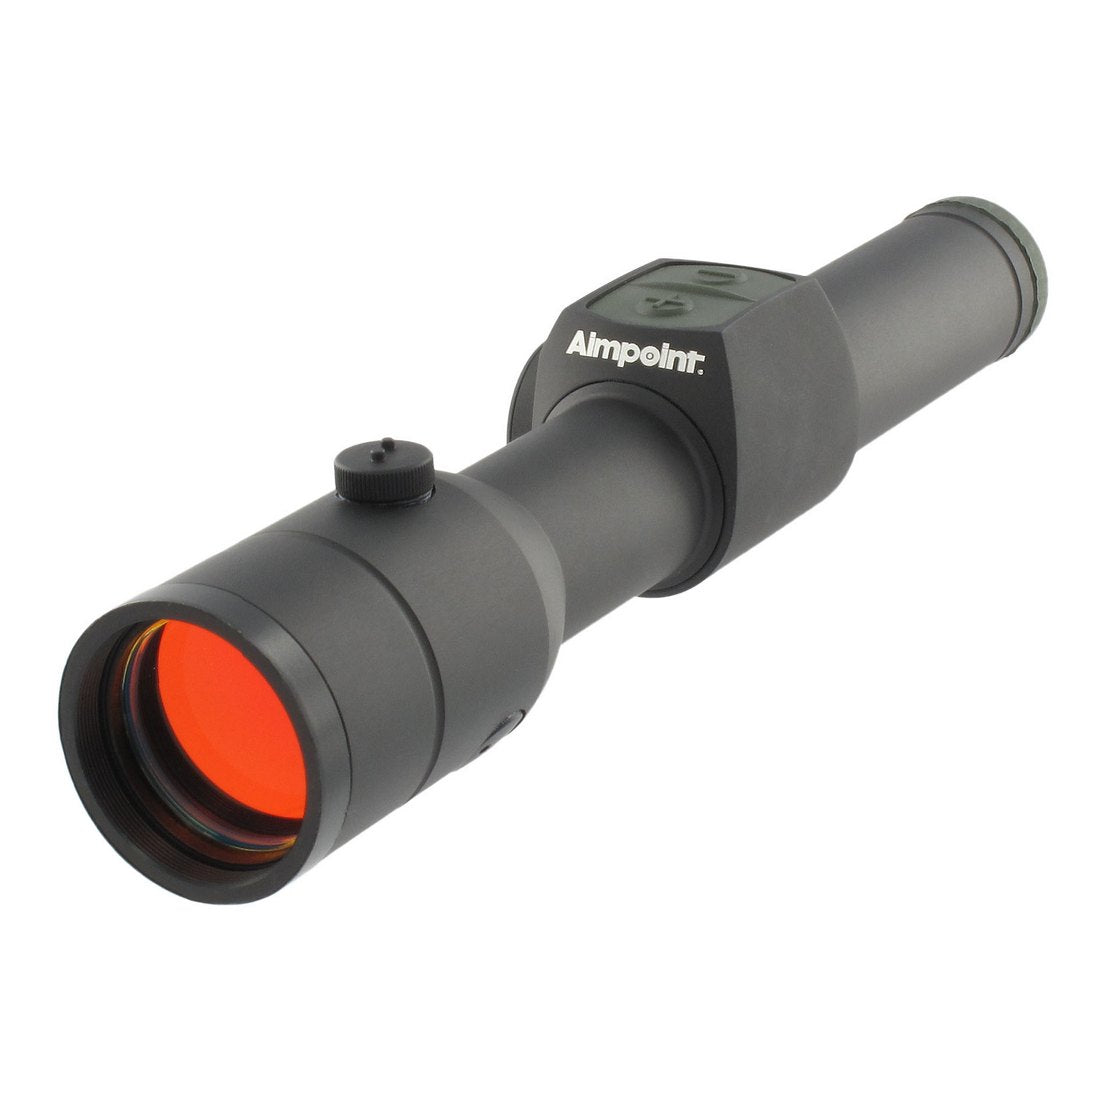 Aimpoint 12691 H30L Sight - Security Pro USA